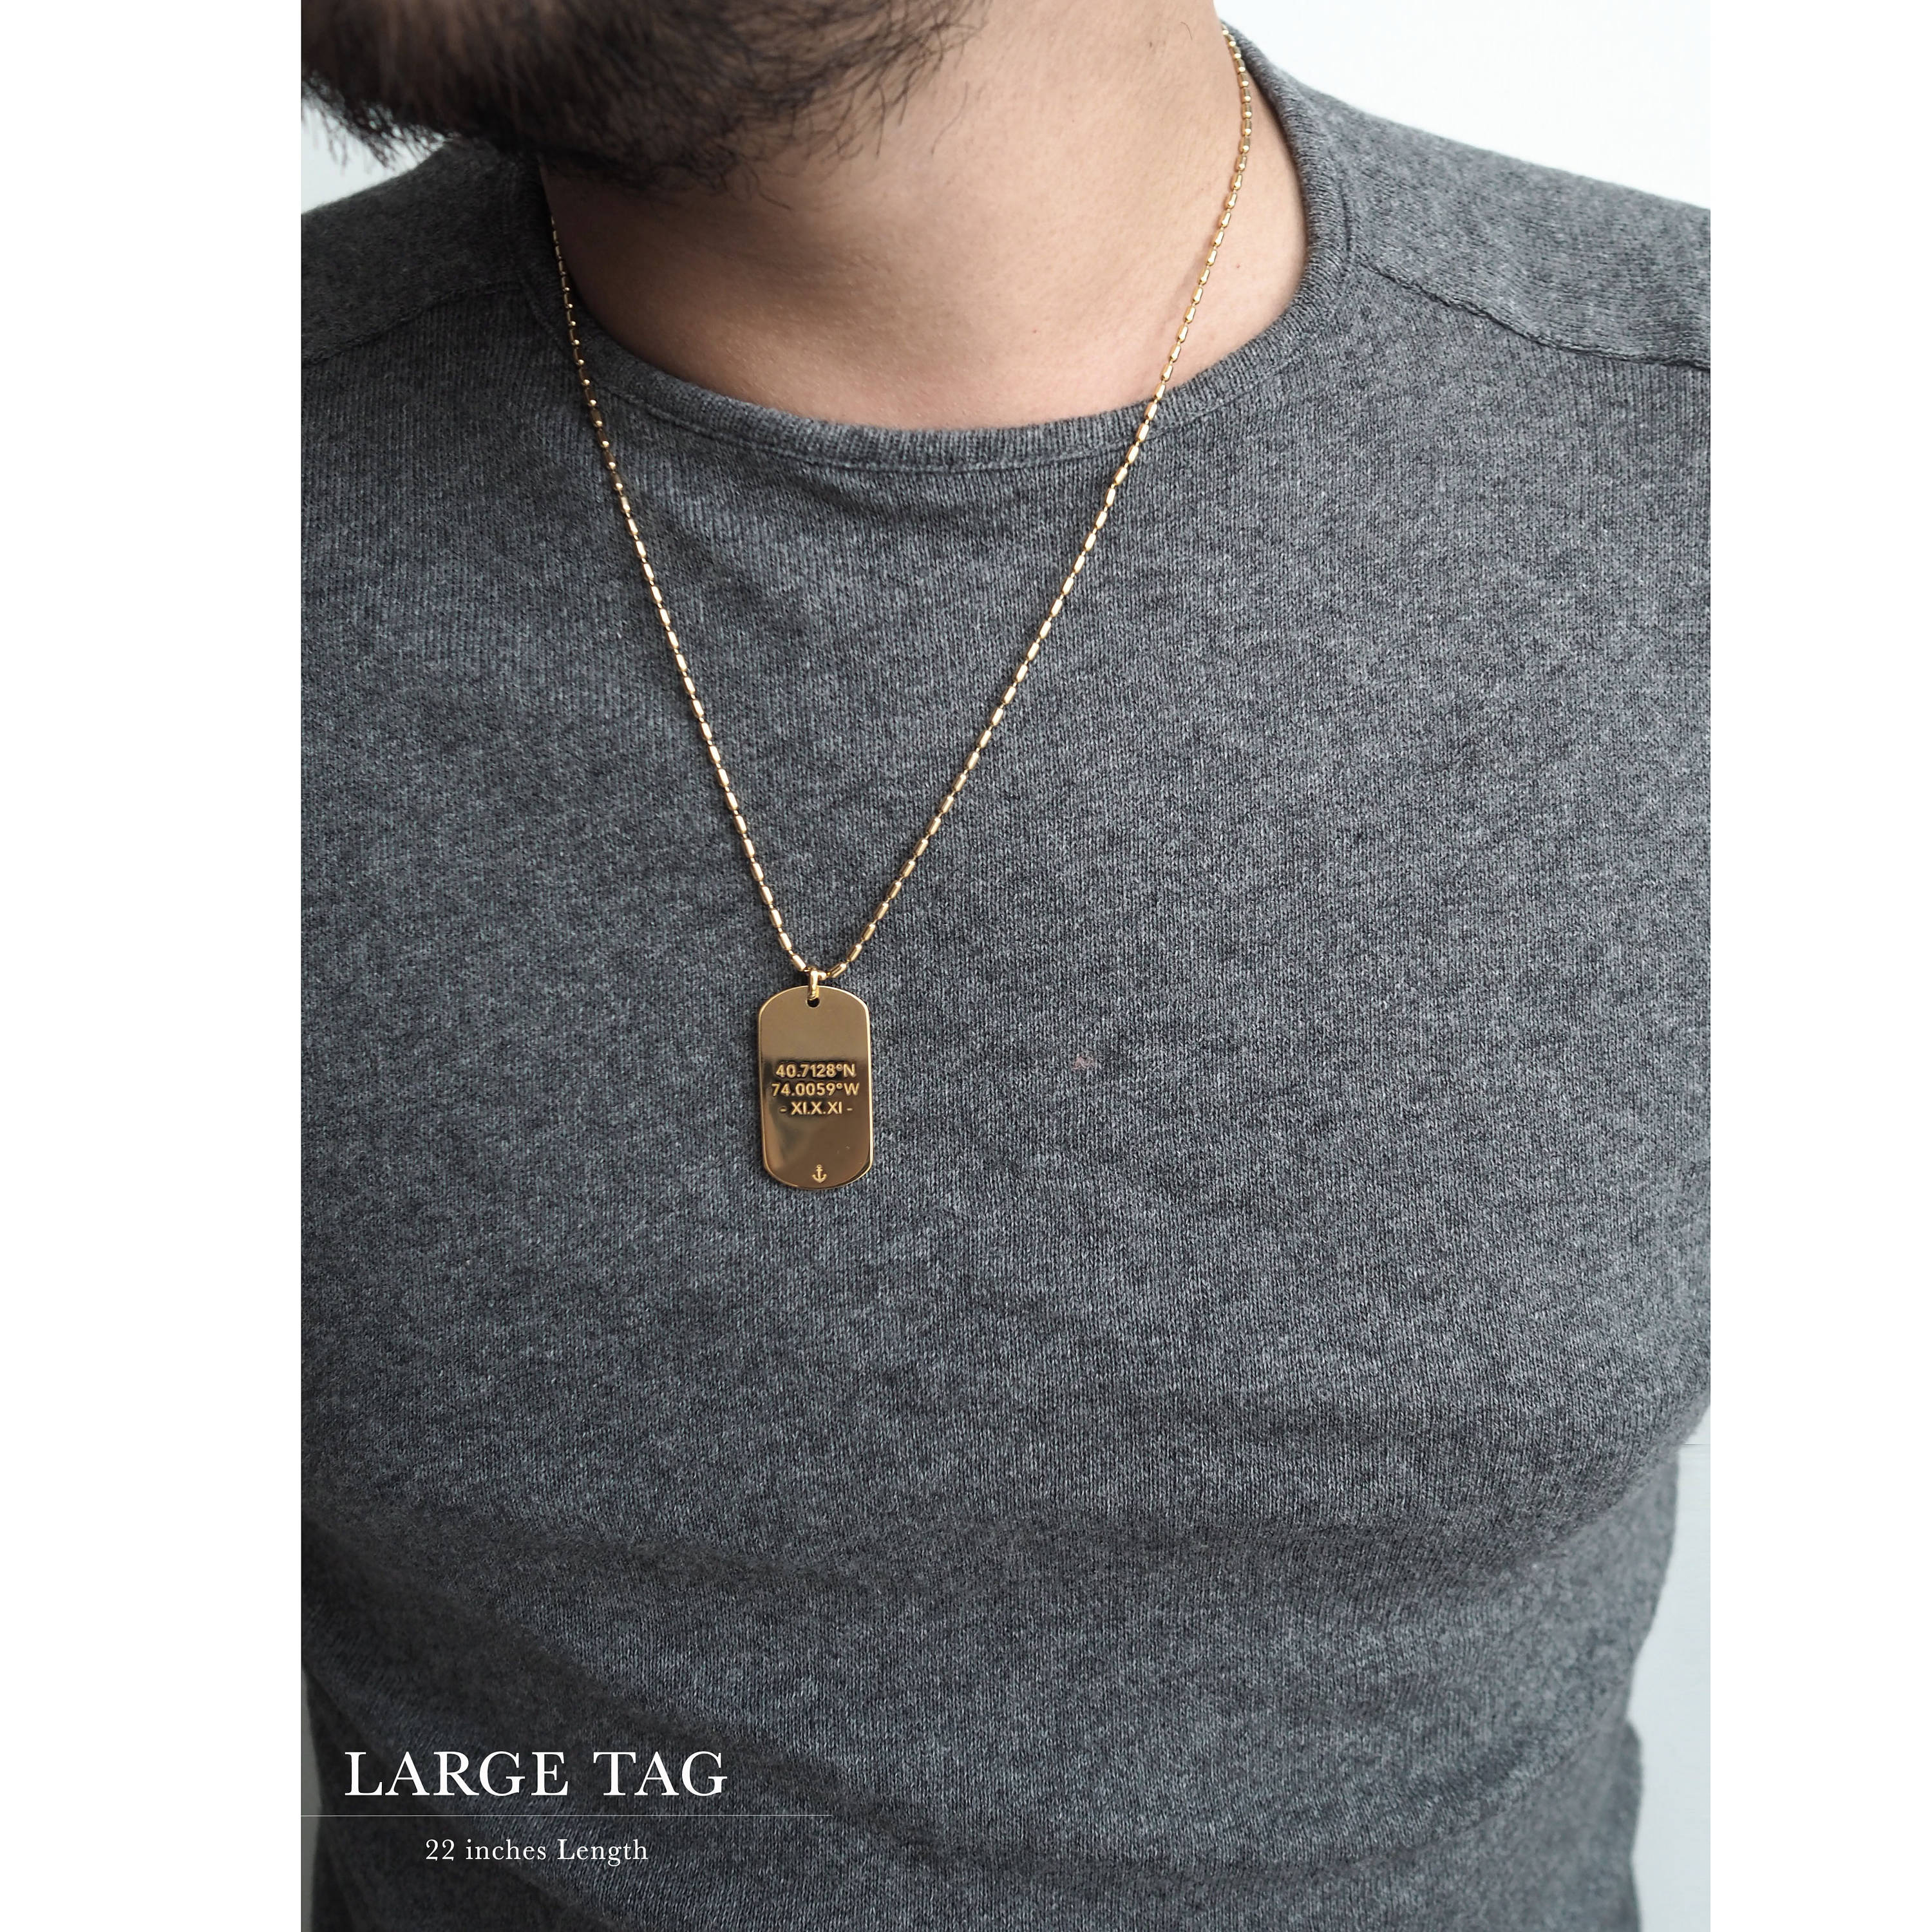 Necklace Length Diagram Name Necklace Length Diagram Wiring Library